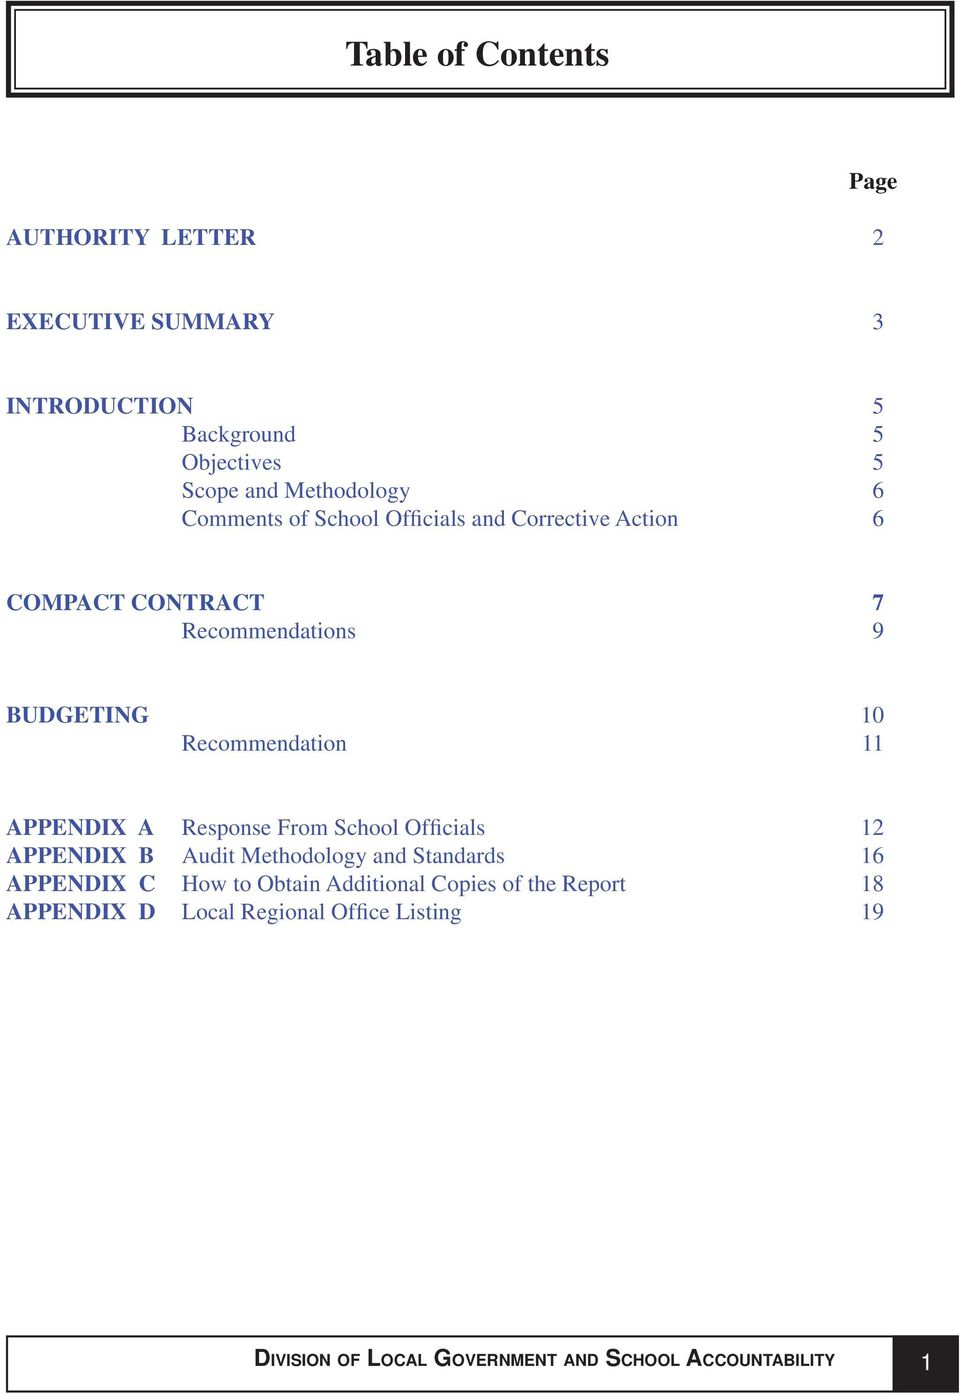 APPENDIX A Response From School Officials 12 APPENDIX B Audit Methodology and Standards 16 APPENDIX C How to Obtain